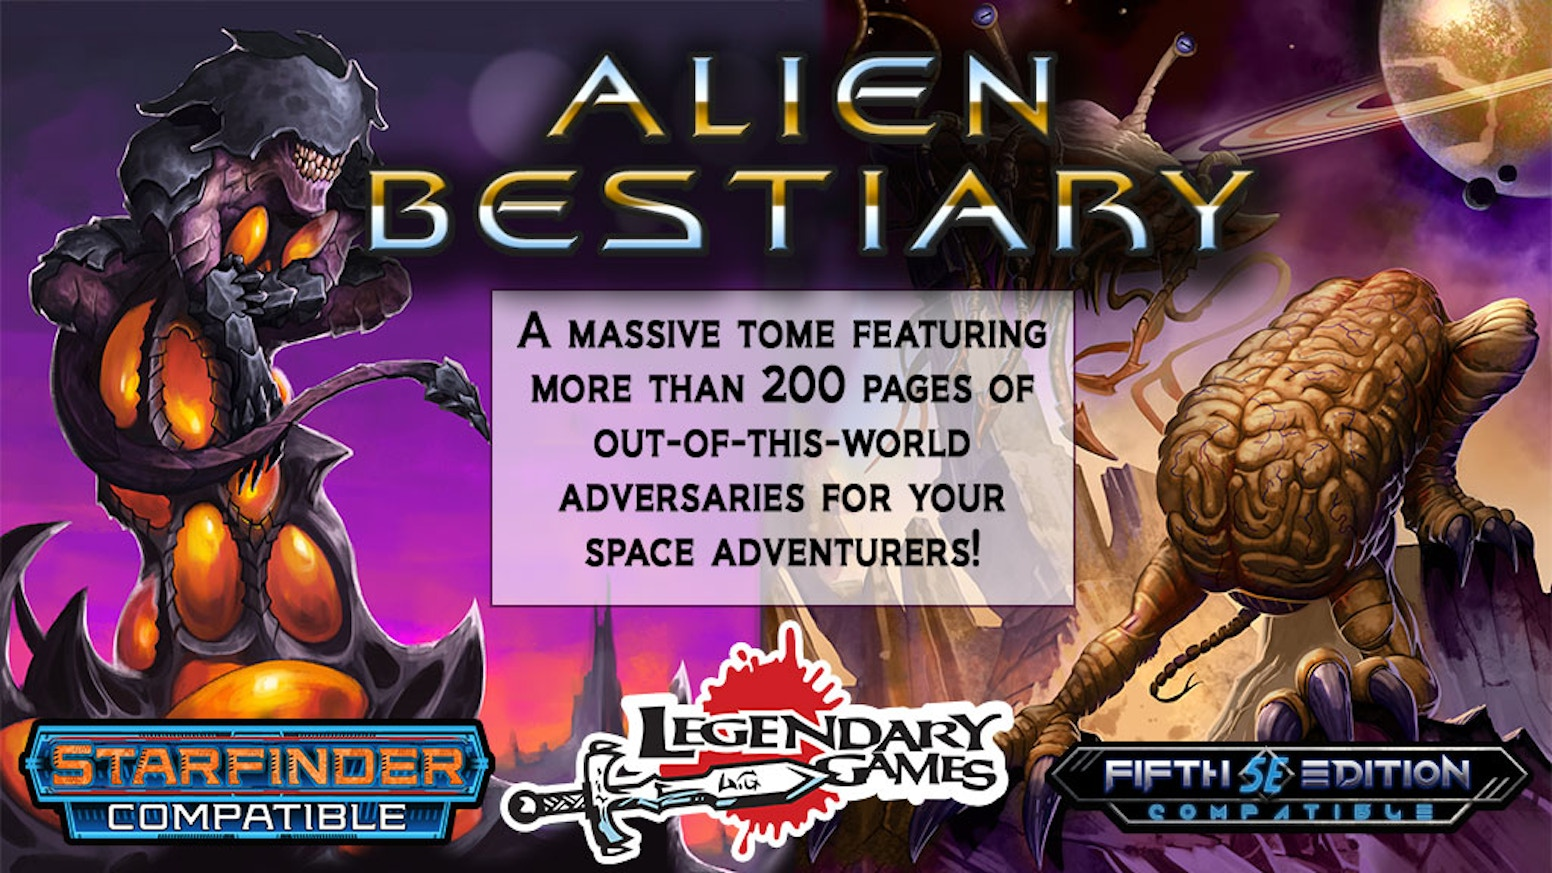 A massive tome of nearly 300 out-of-this-world creatures for 5E, Starfinder, and Pathfinder sci-fi and space adventures!